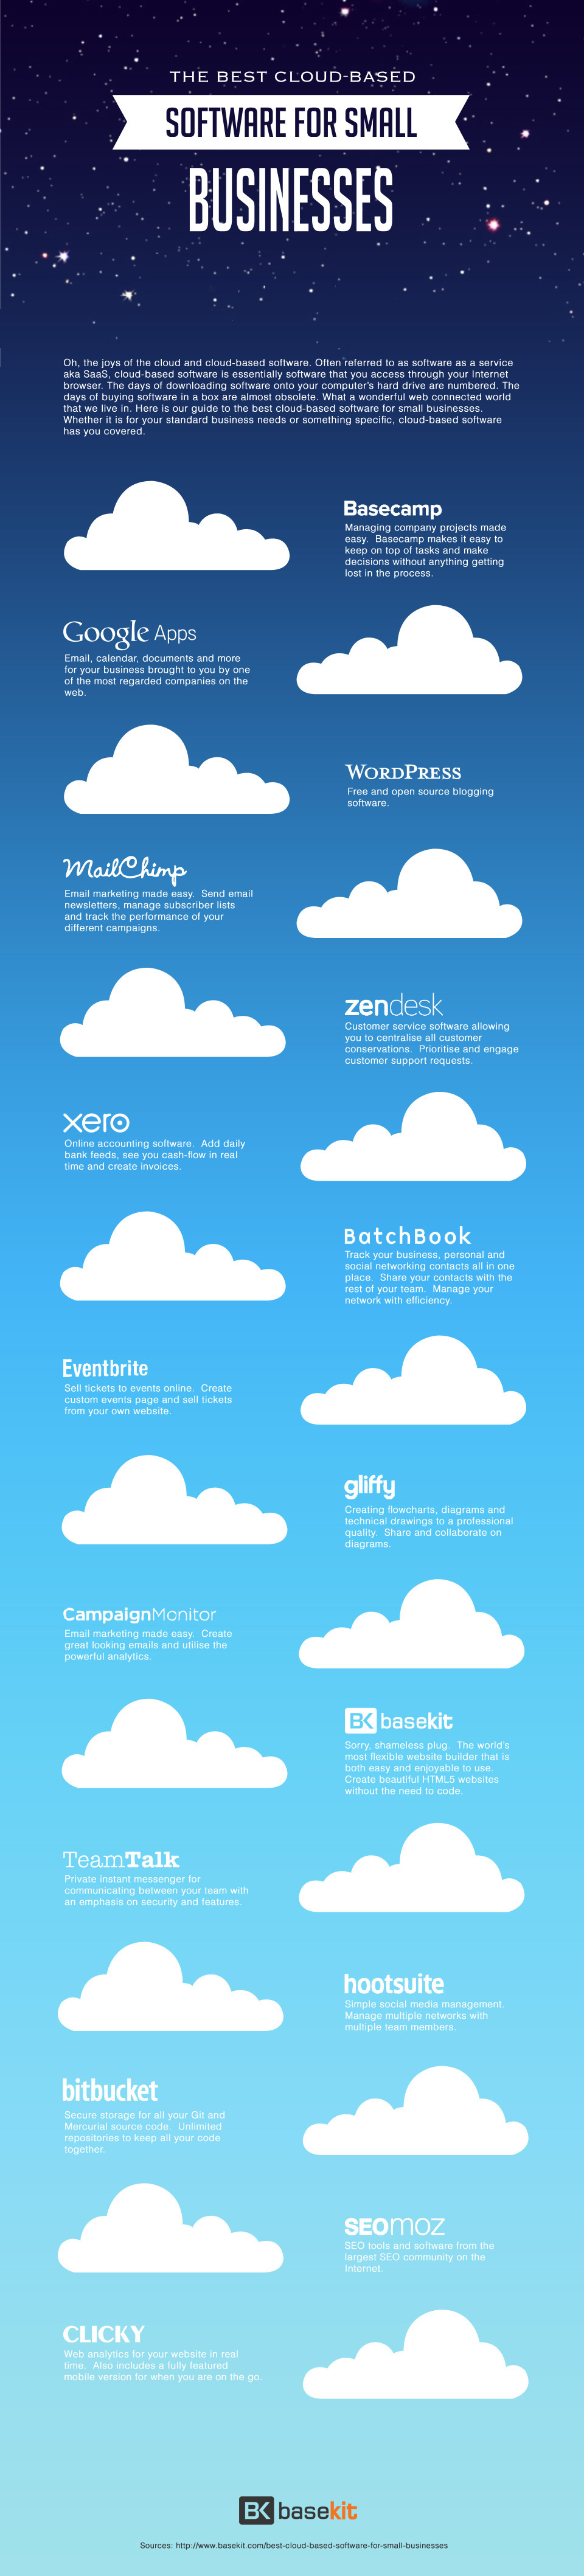 The Best Cloud-Based Software For Small Businesses 1